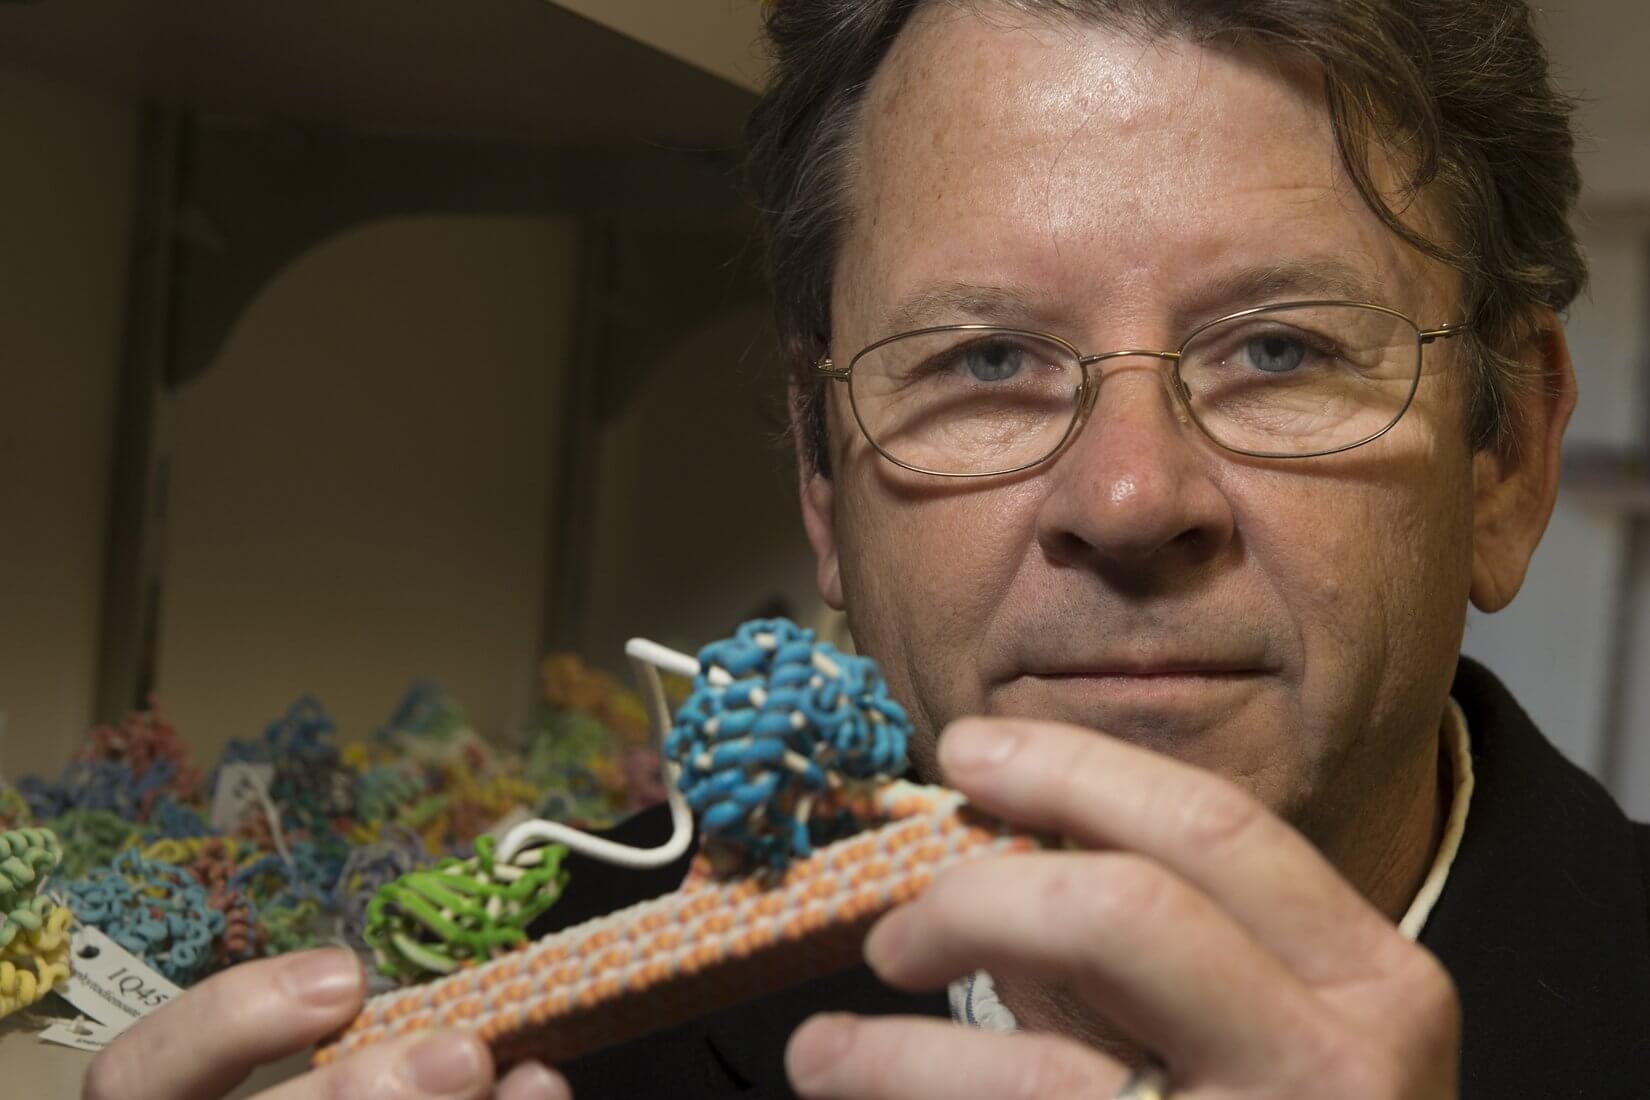 George Phillips with a 3-D model of an enzyme (blue/green) that cuts cellulose fibers (orange/gray). (Credit: Jeff Fitlow/Rice University)